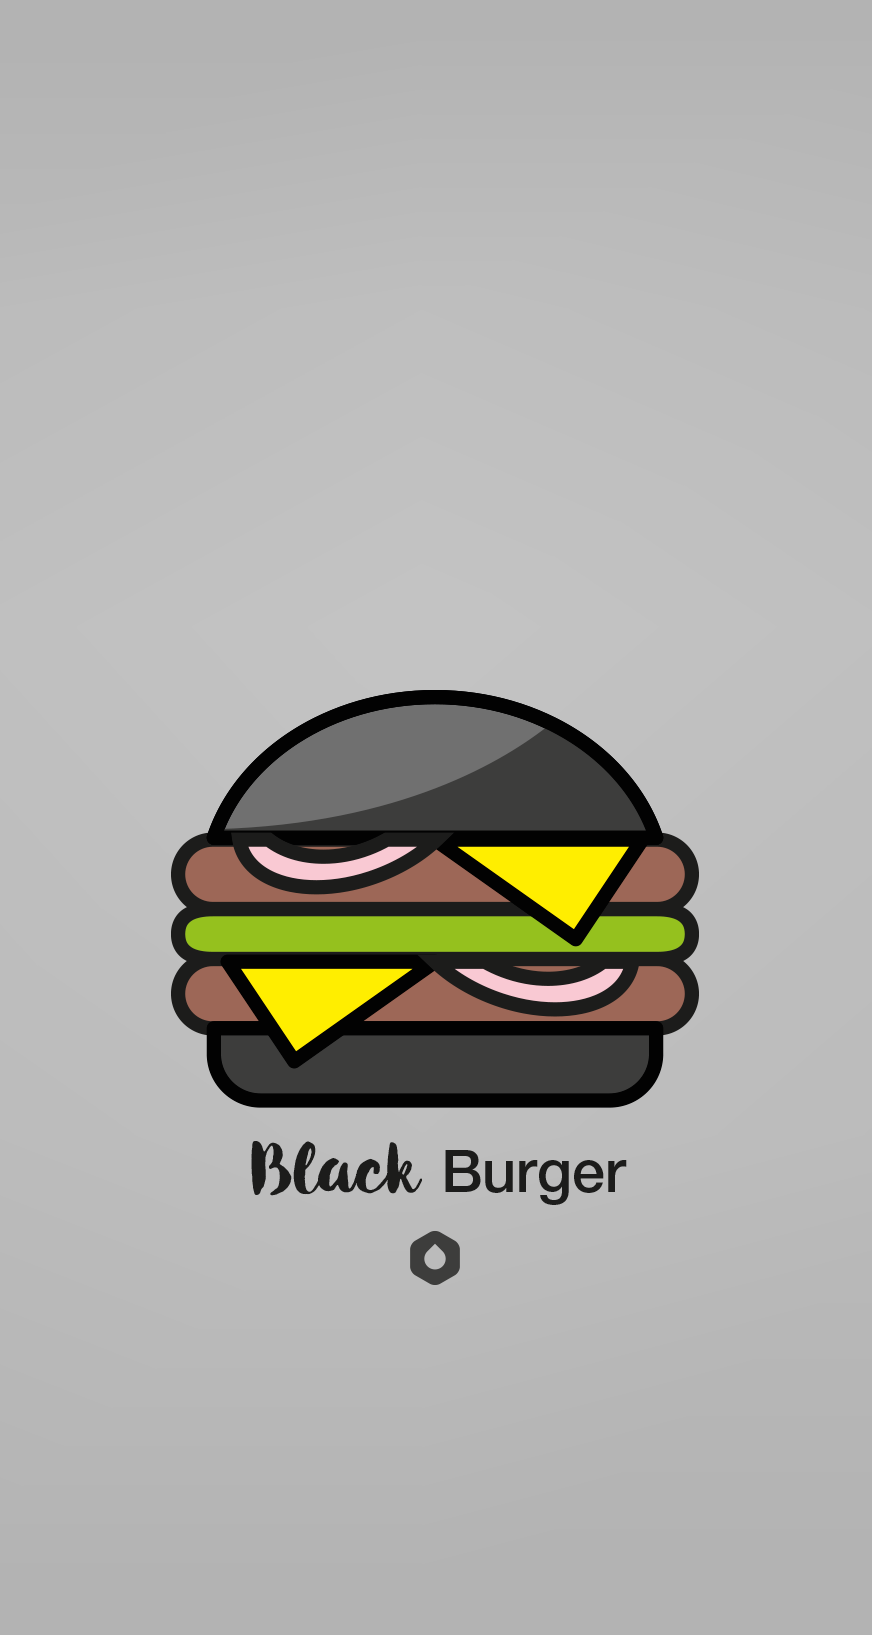 Wallpaper Pick Your Burger - iPhone6 - Black